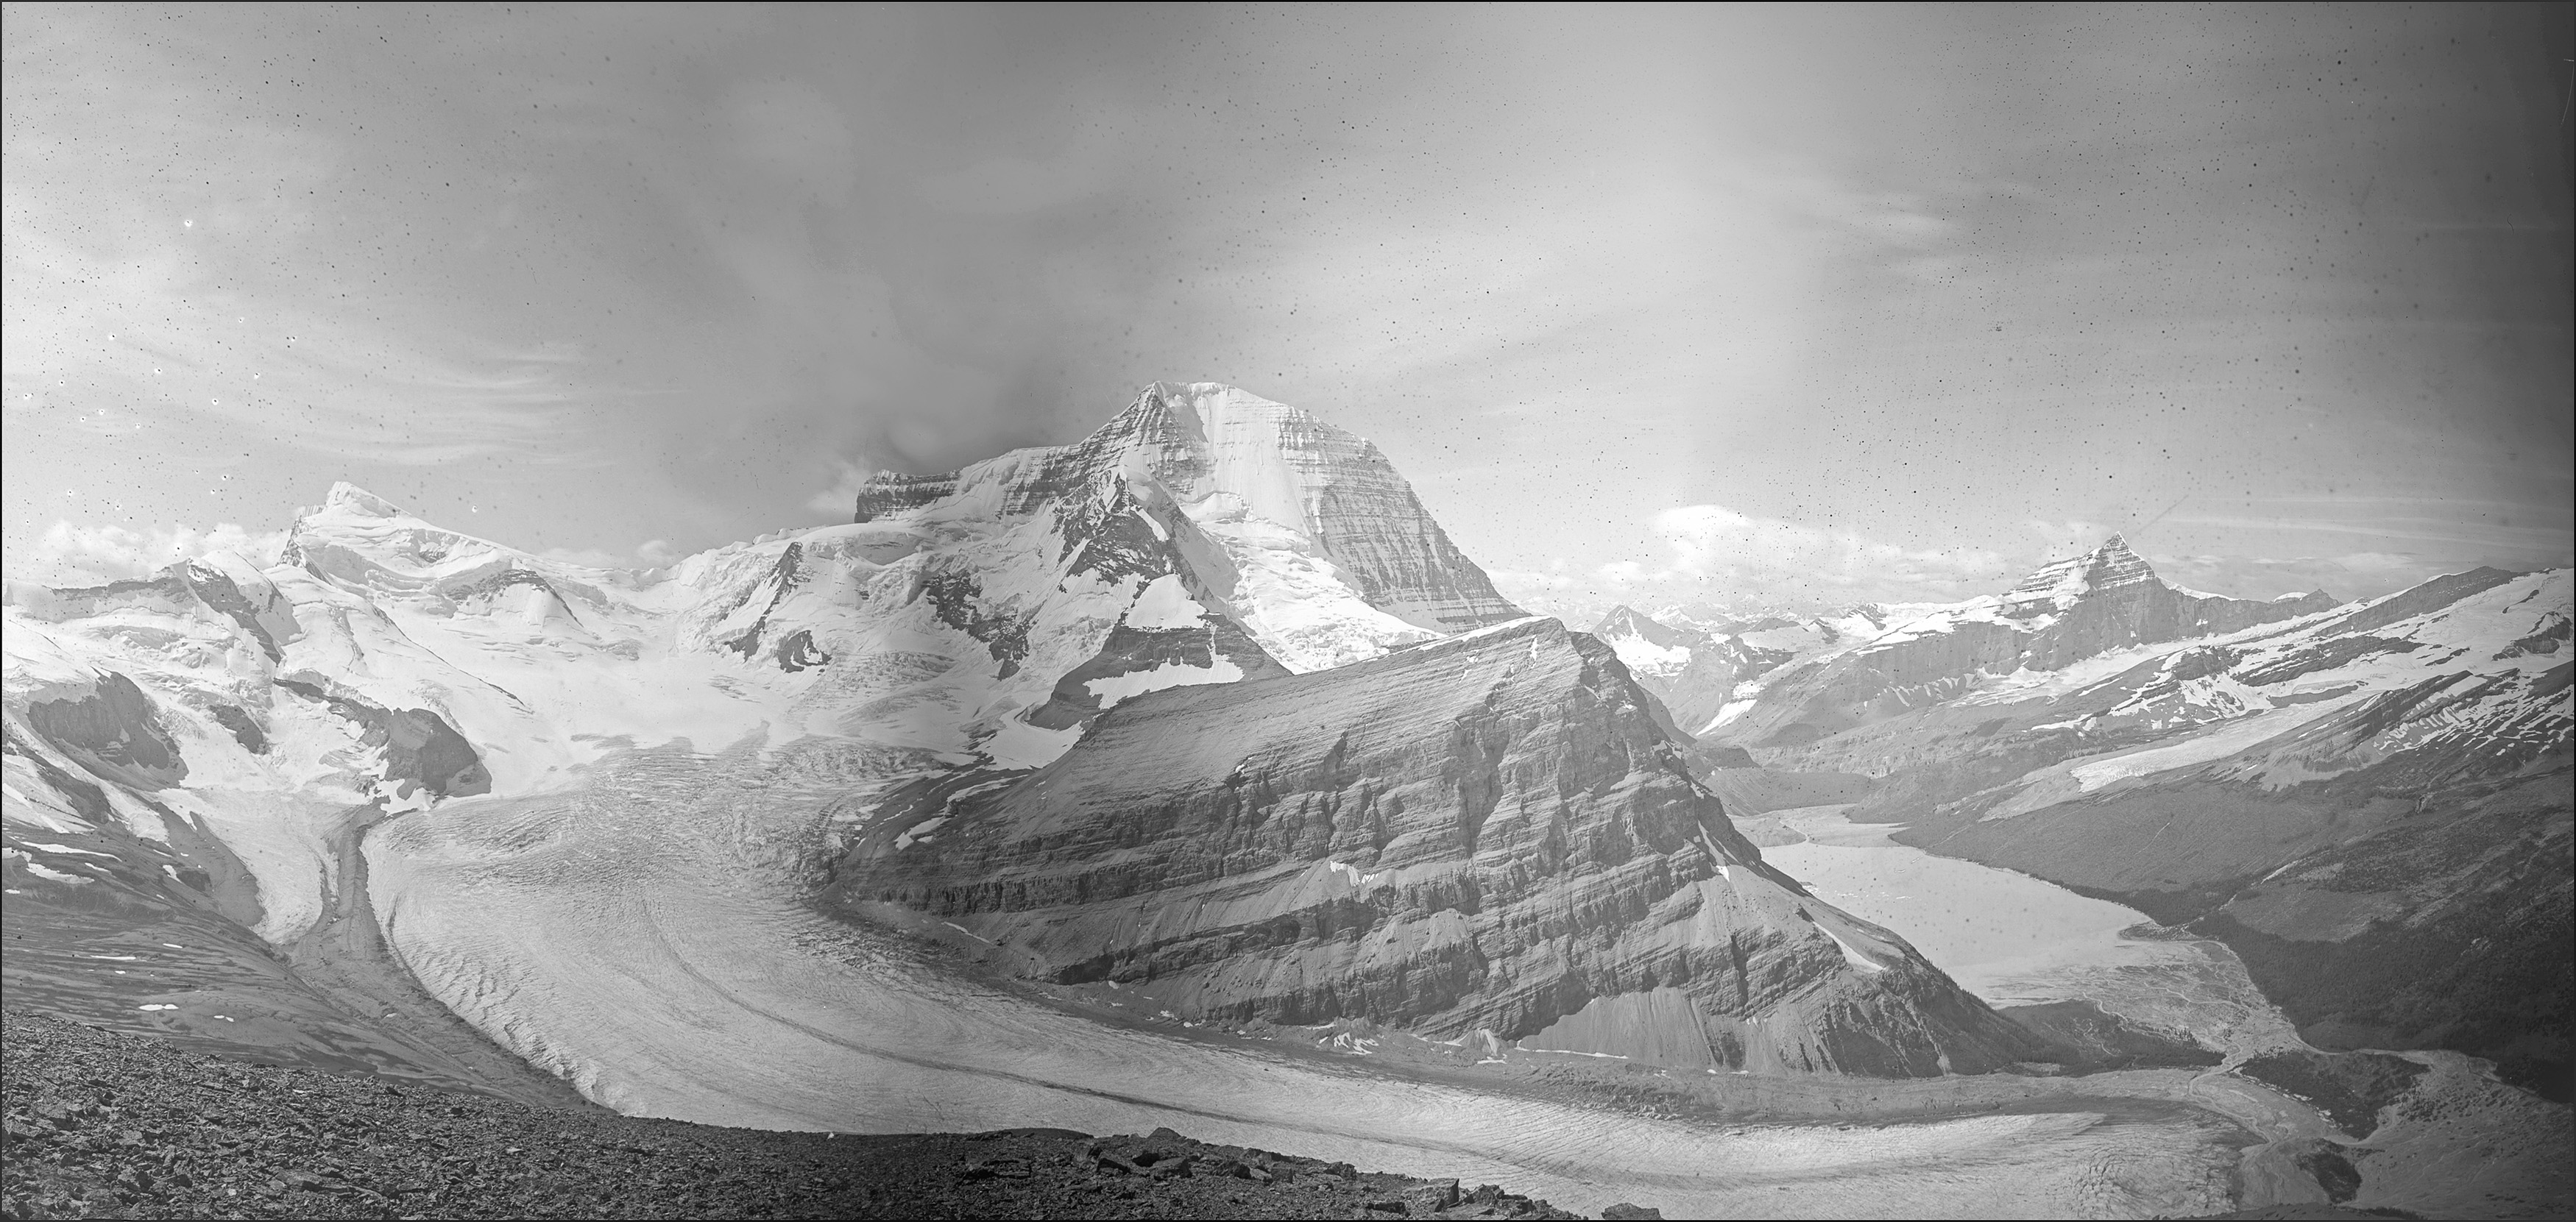 The Robson Glacier: A. O. Wheeler, 1911